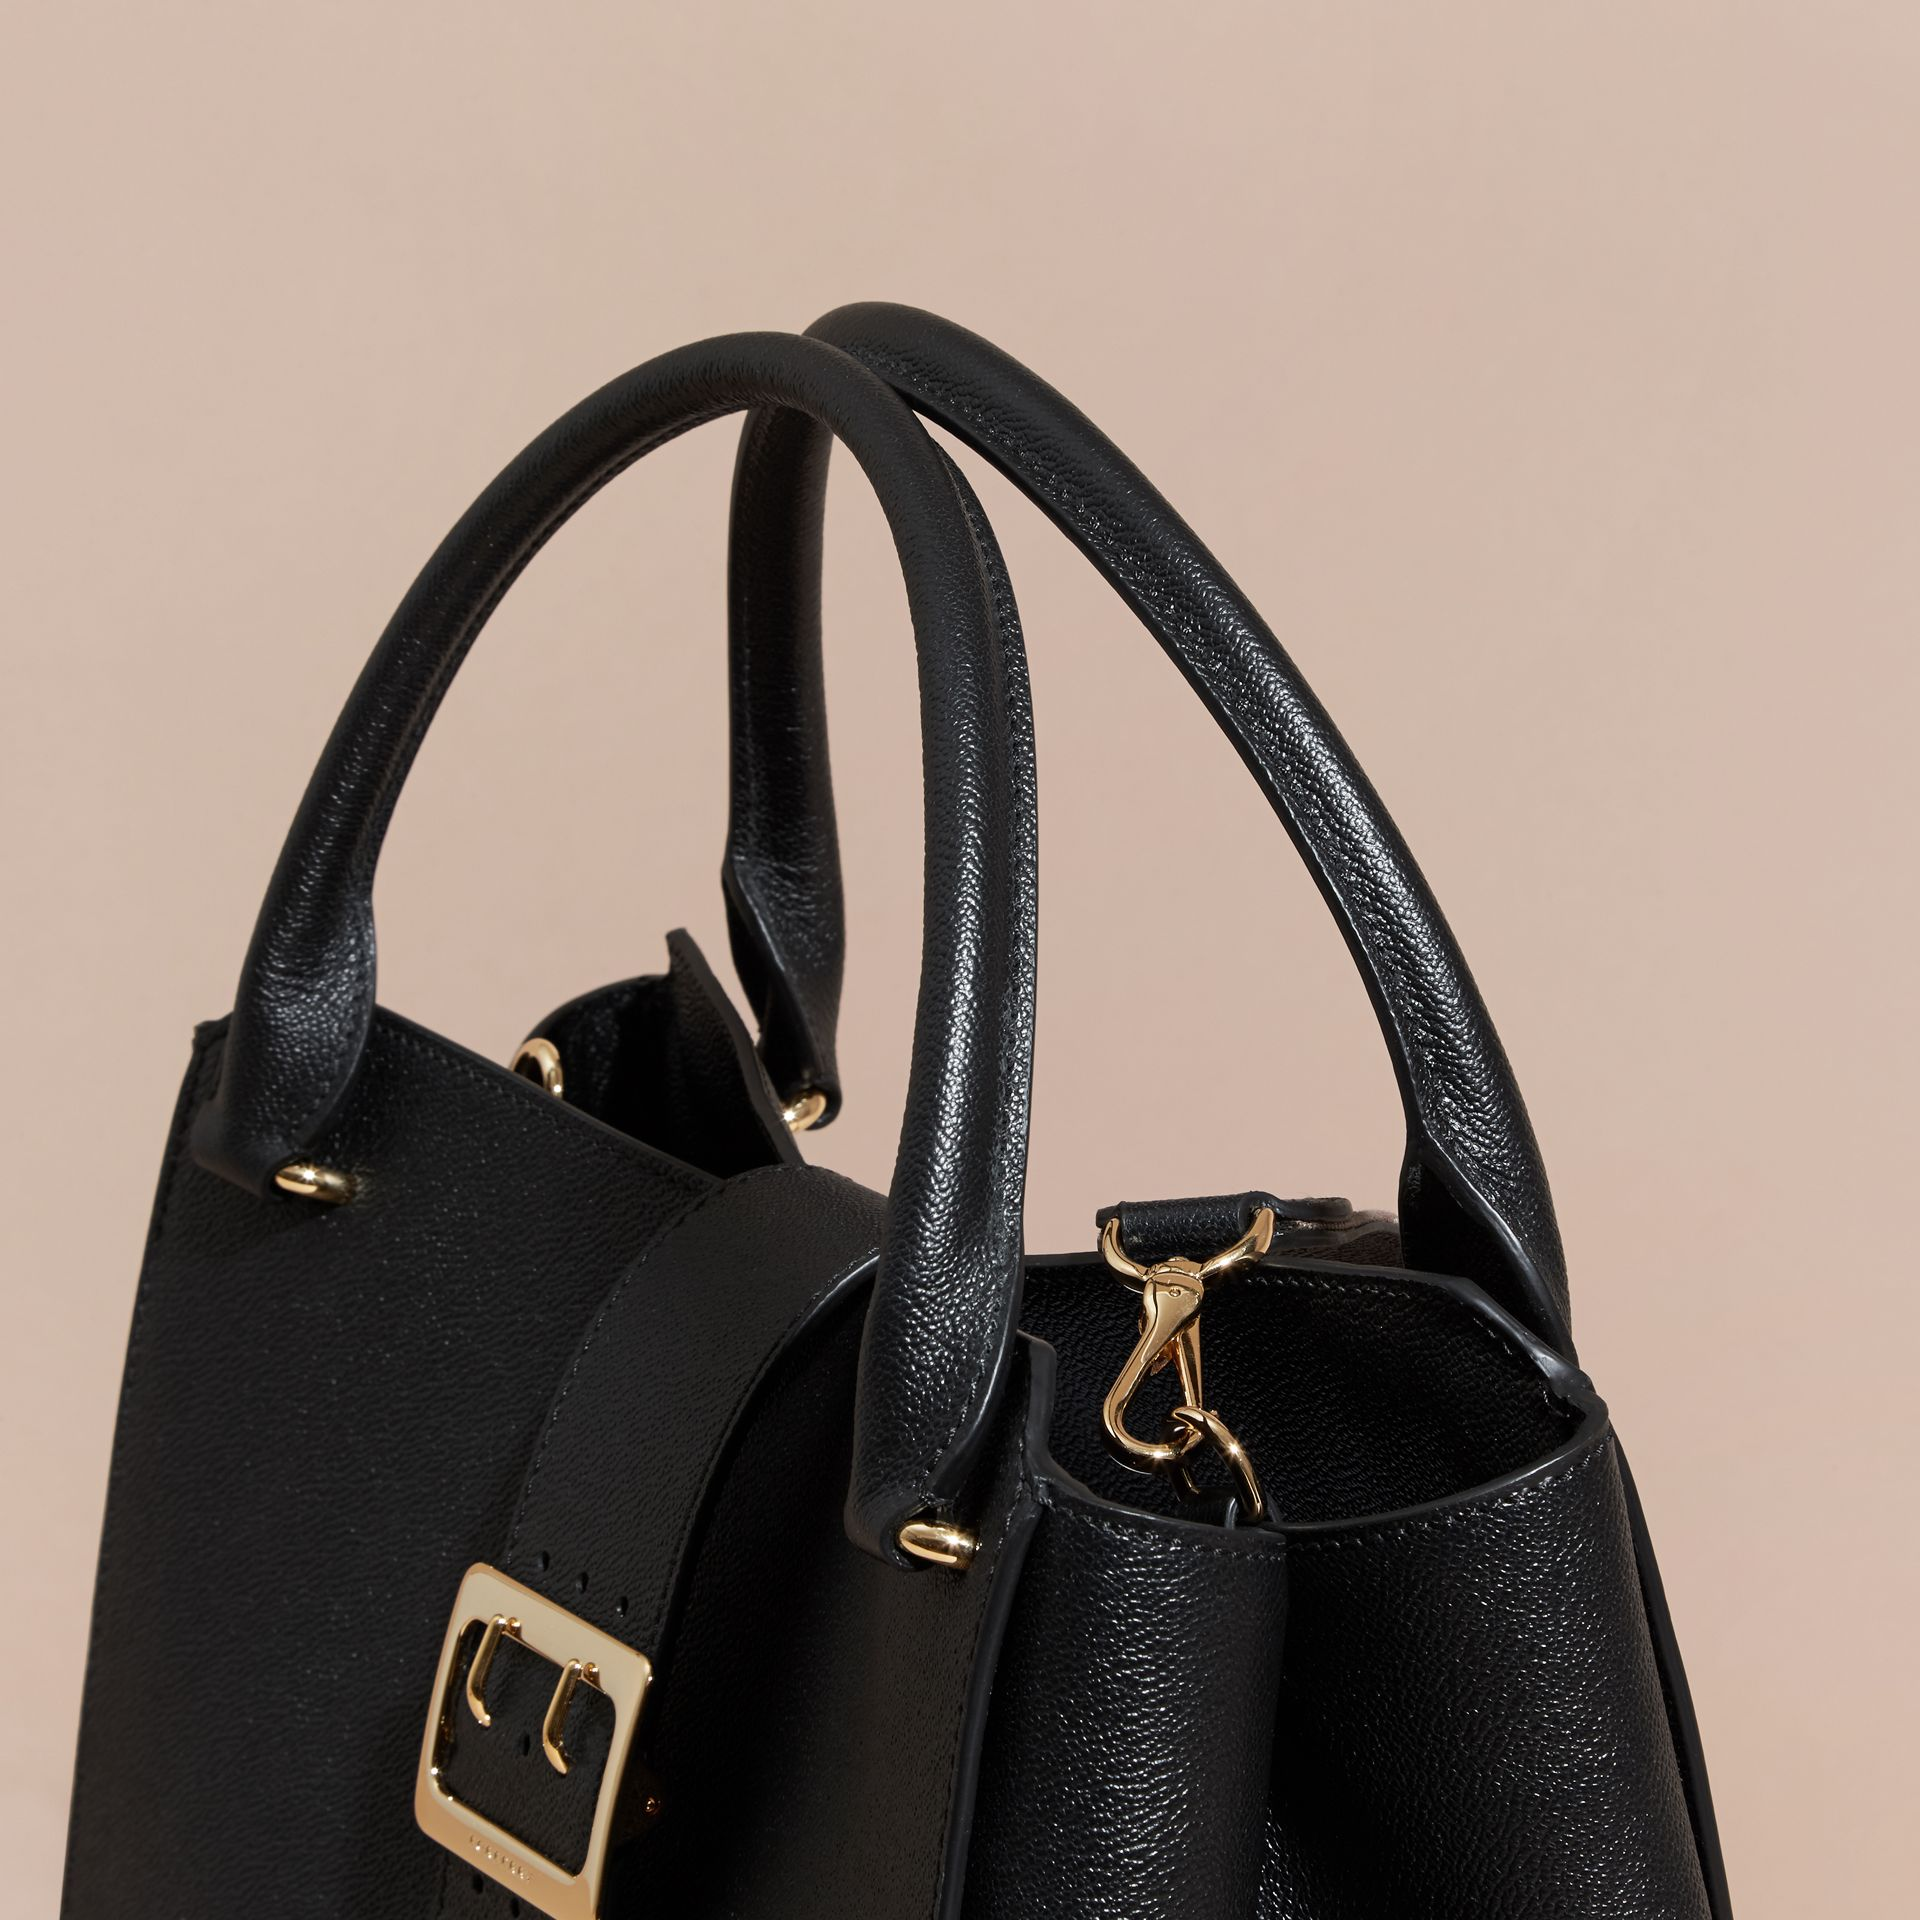 Borsa tote The Buckle grande in pelle a grana (Nero) - Donna | Burberry - immagine della galleria 2